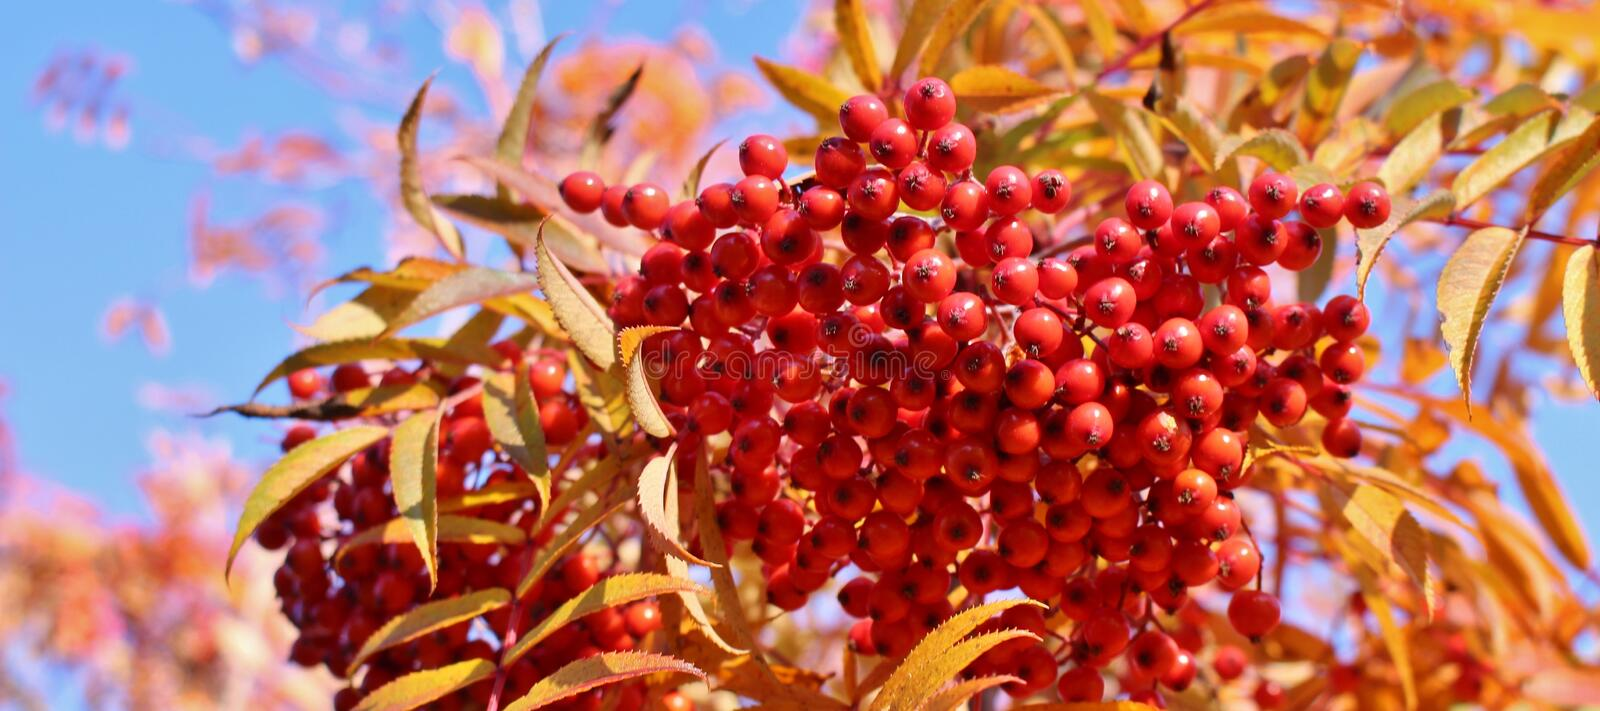 Autumn colored mountain ash. A beautiful autumn day when the sun shines over red rowan berries stock photography